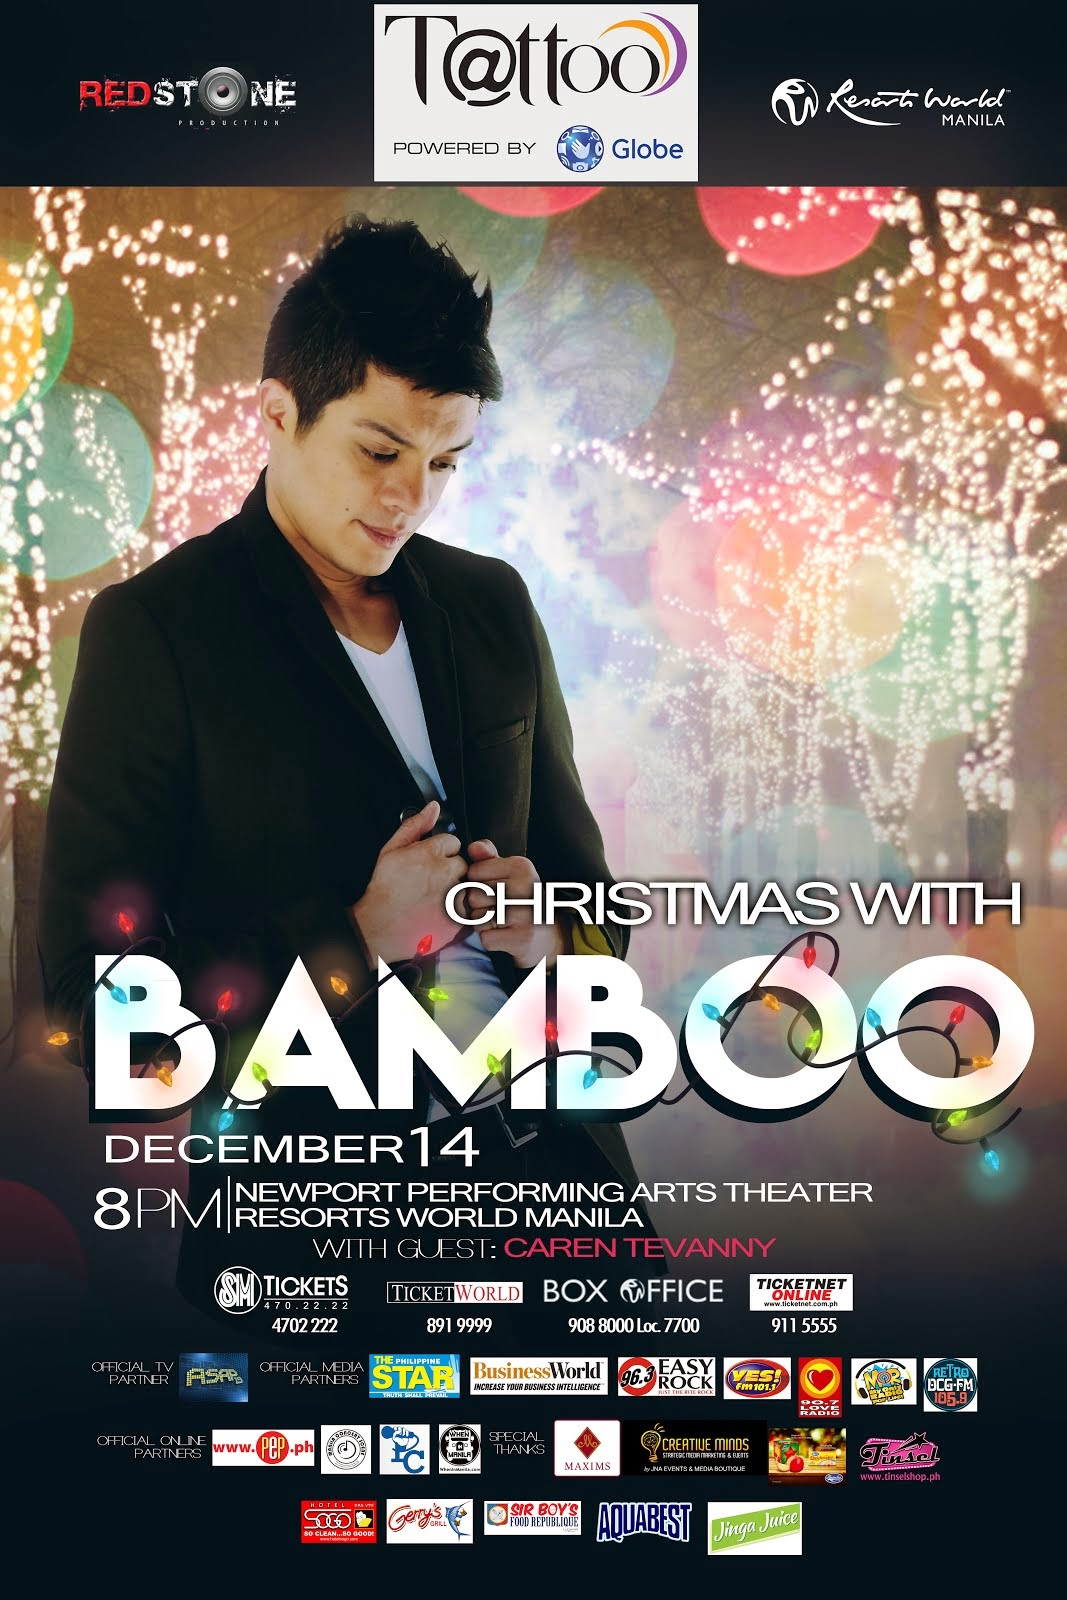 Christmas With Bamboo